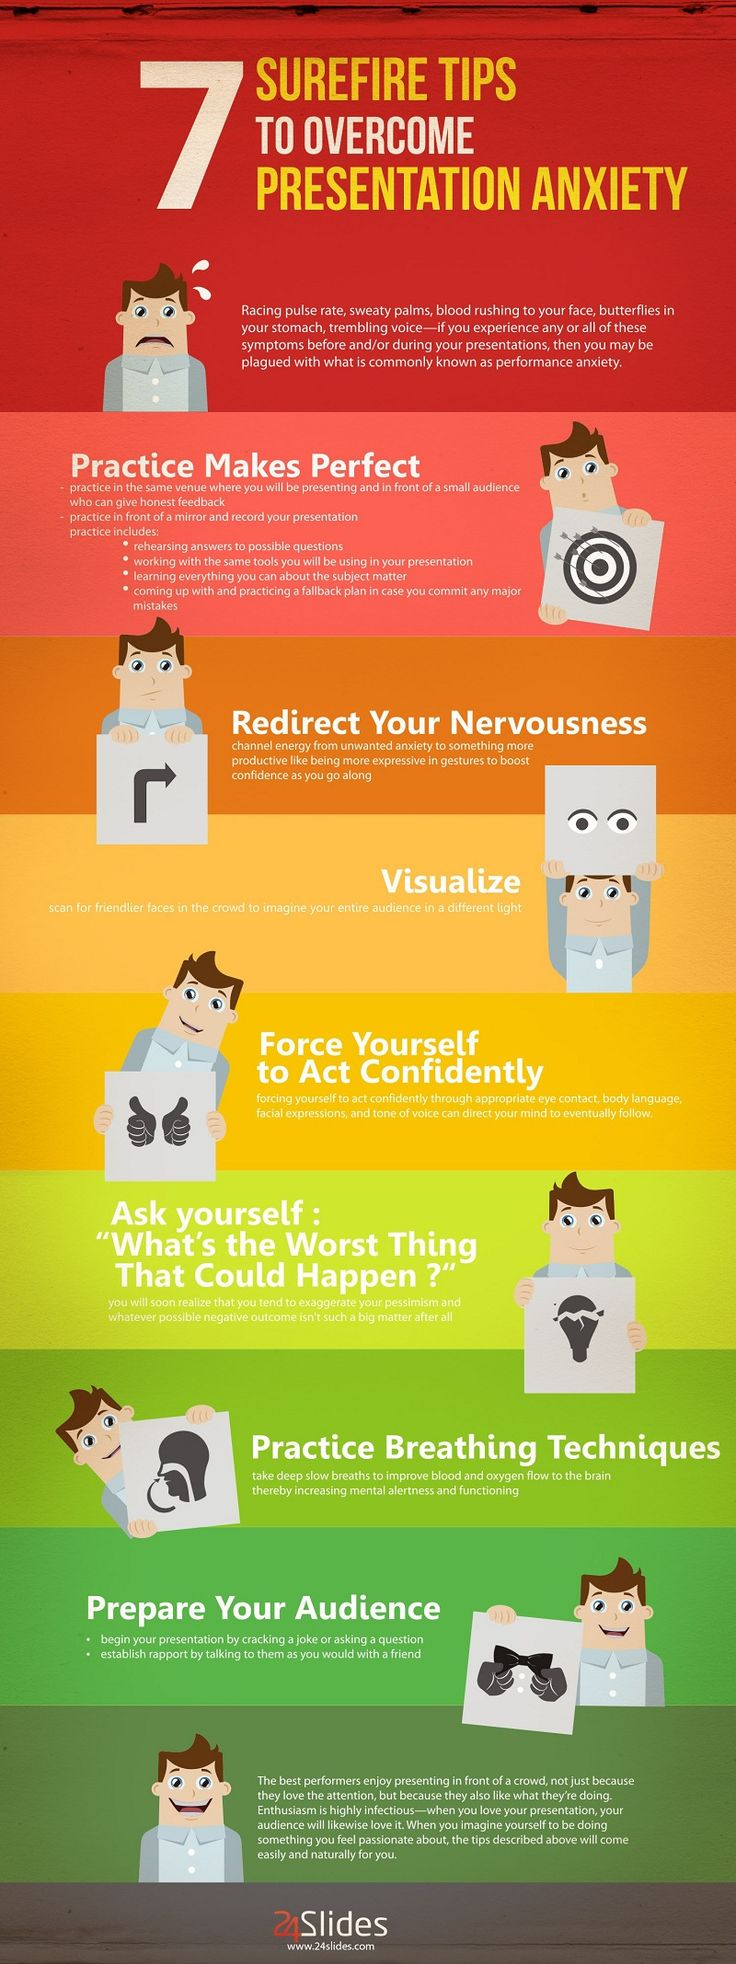 Infographic: 7 Surefire Tips To Overcome Presentation Anxiety